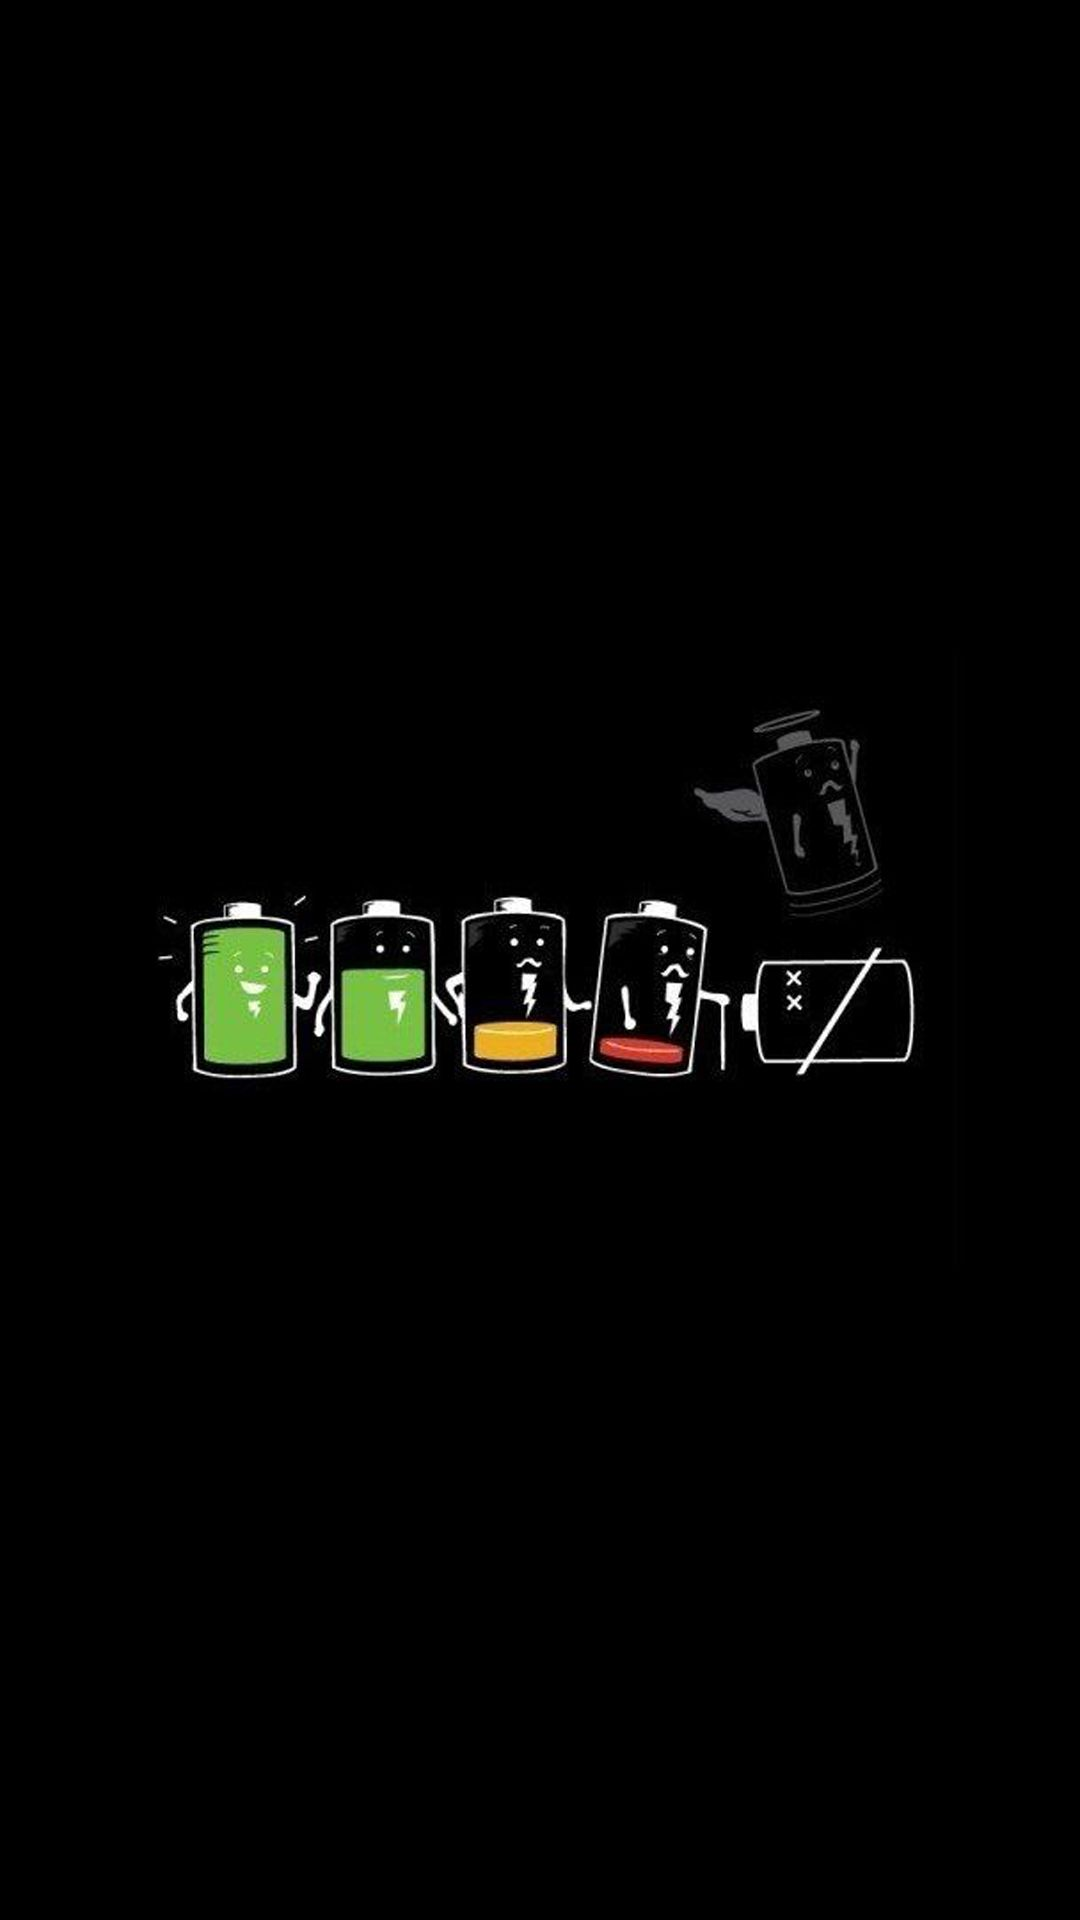 Battery Life Cycle Funny Iphone 6 Hd Wallpaper Funny Phone Wallpaper Ipod Wallpaper Funny Wallpaper Pictures